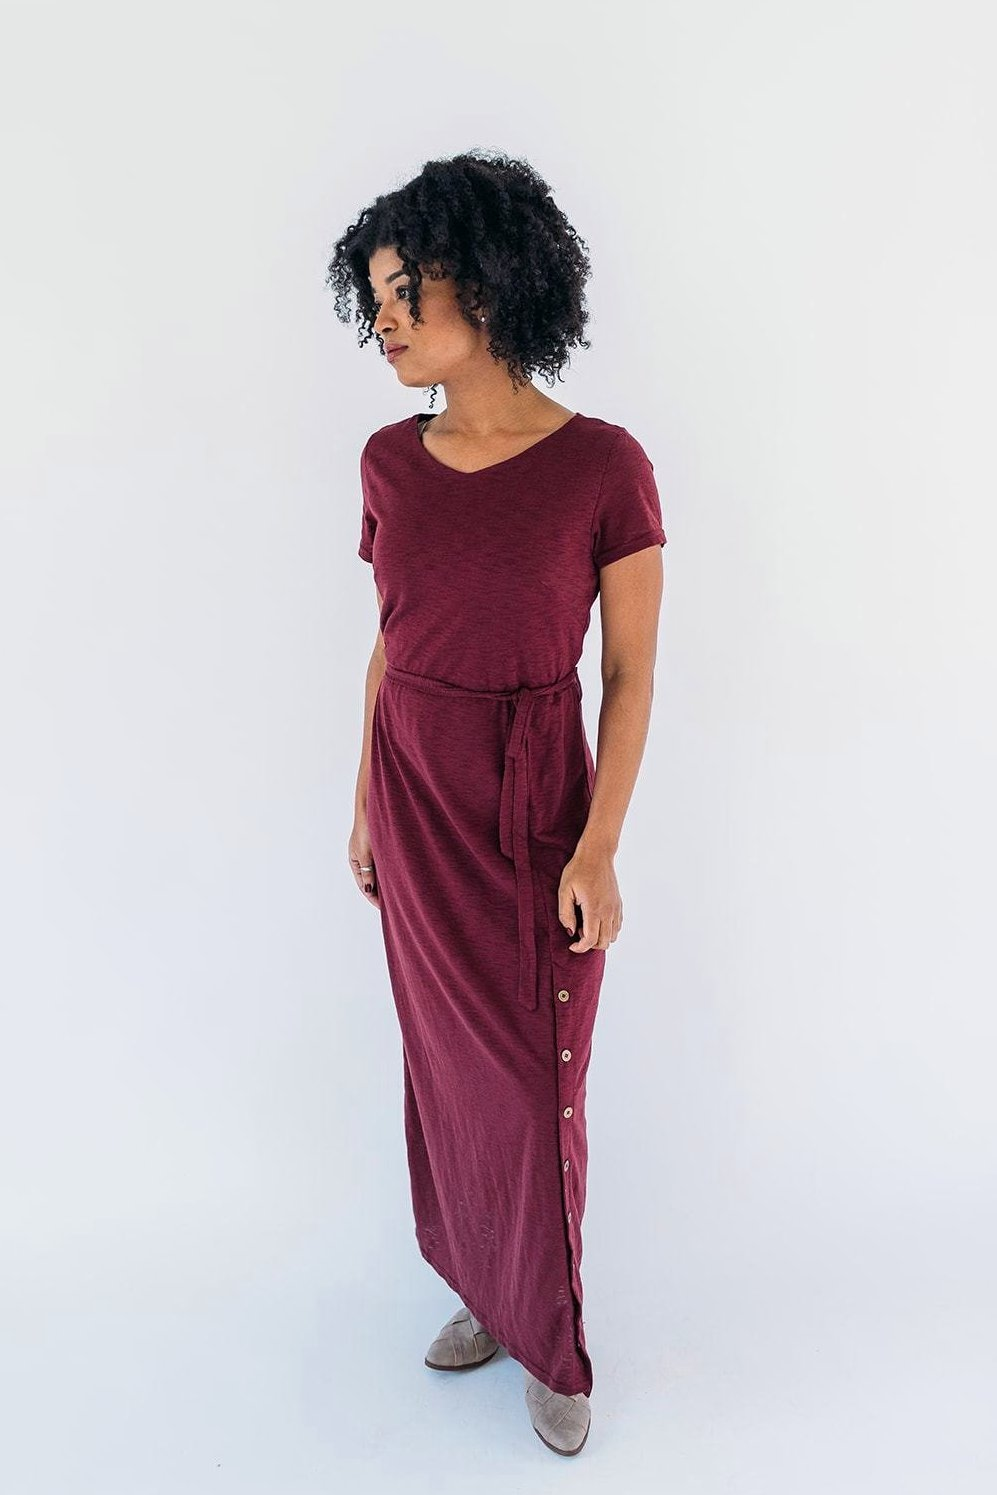 'Christina' Dress in Wine